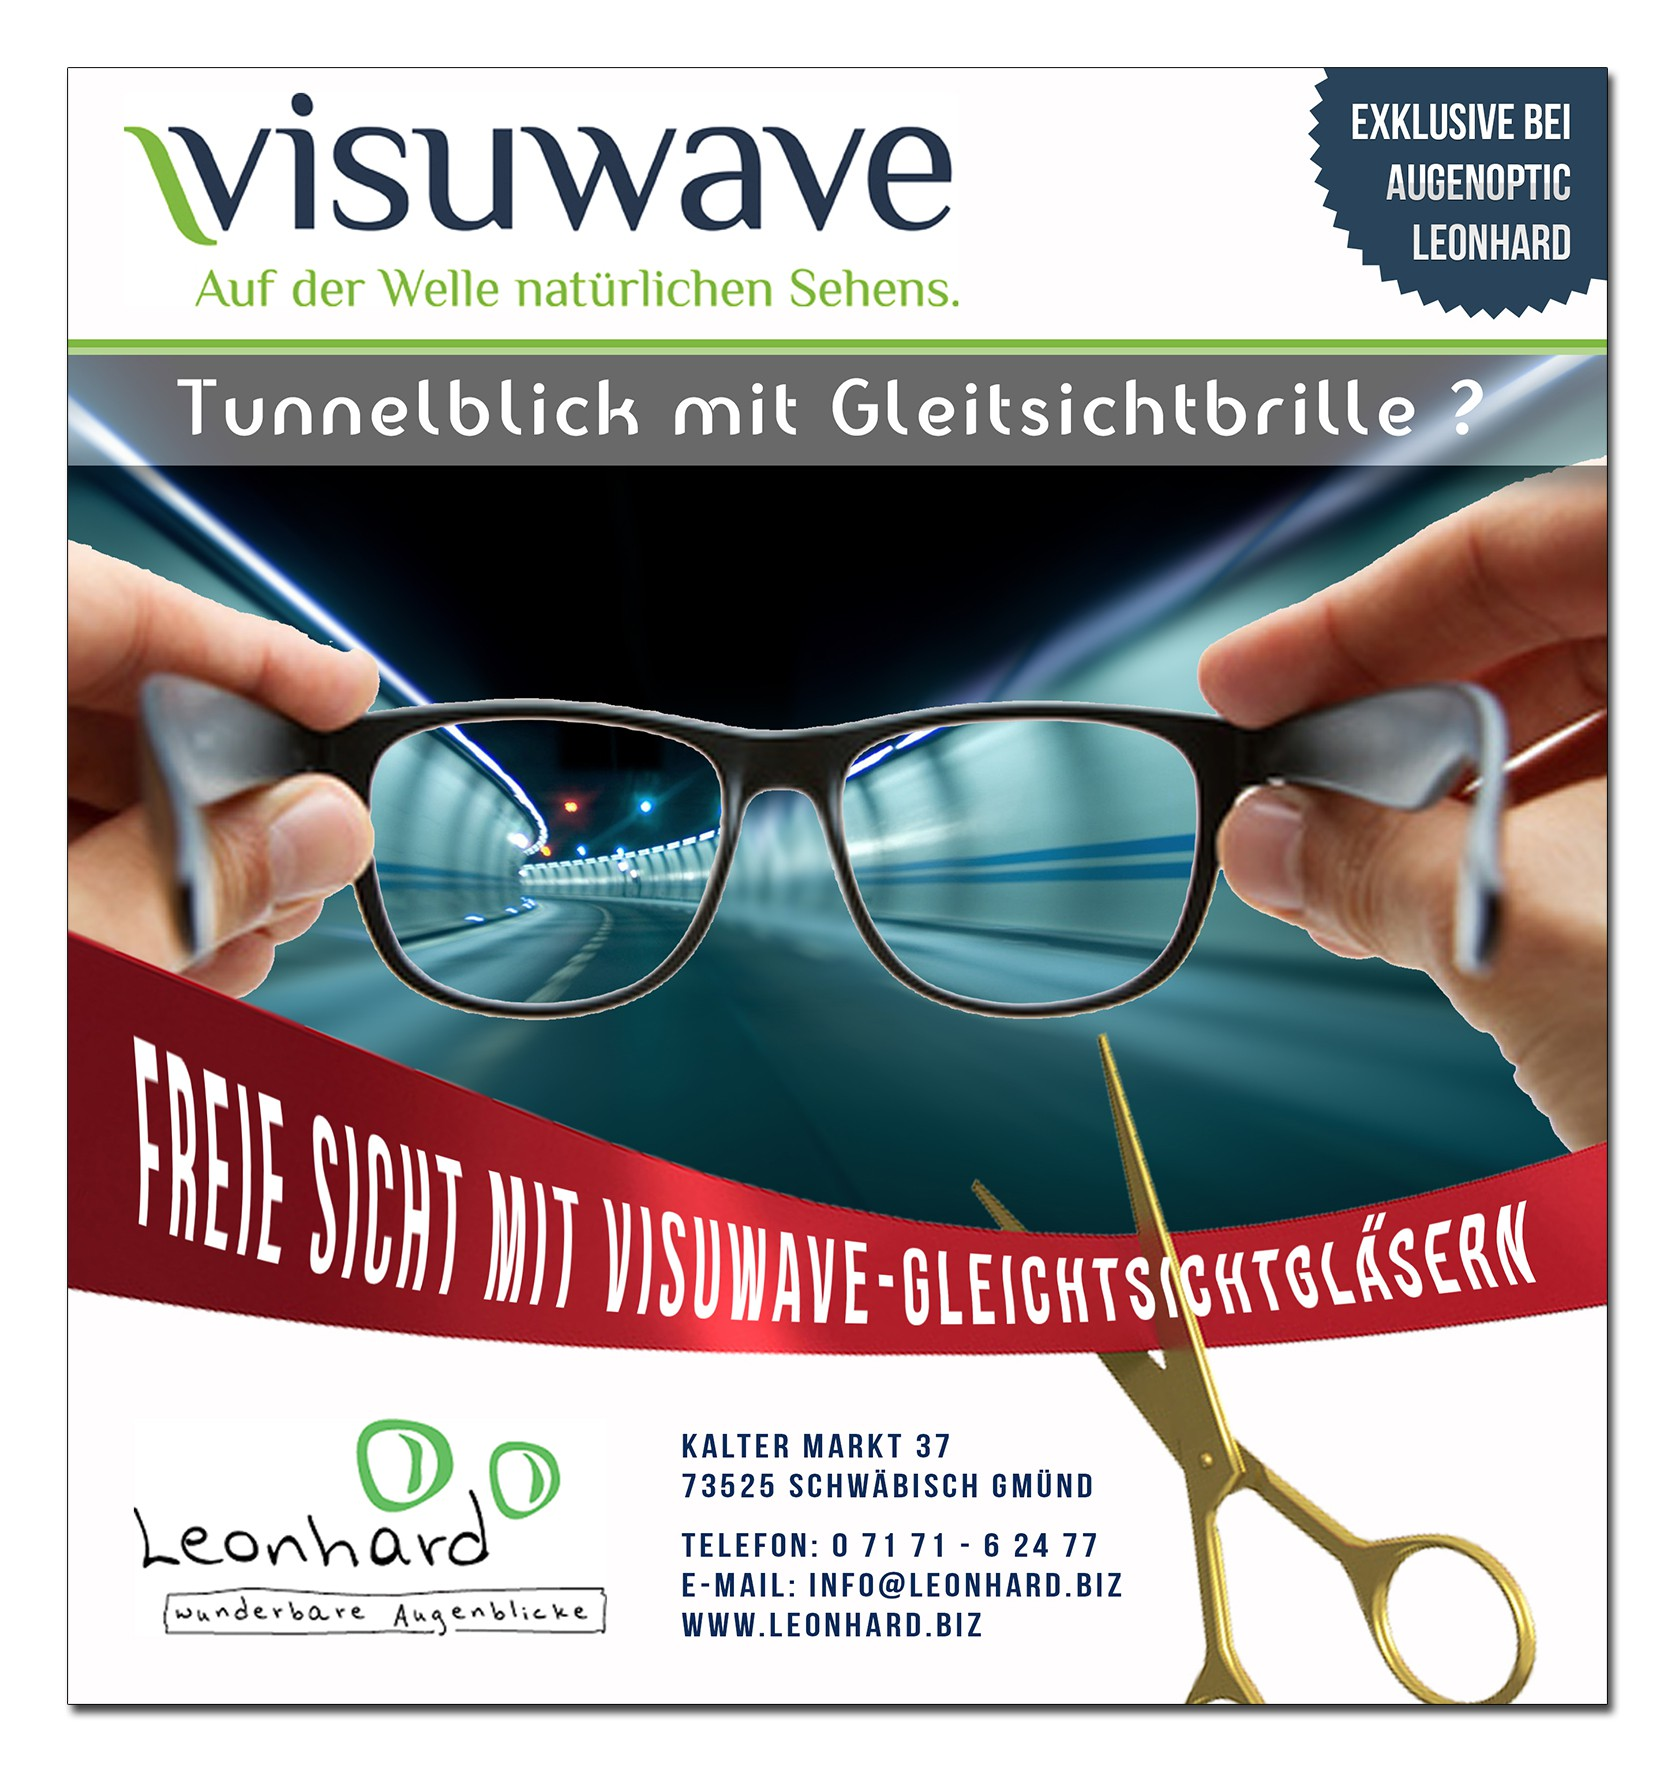 Augenoptik Leonhard need a newspaper ad for glasses